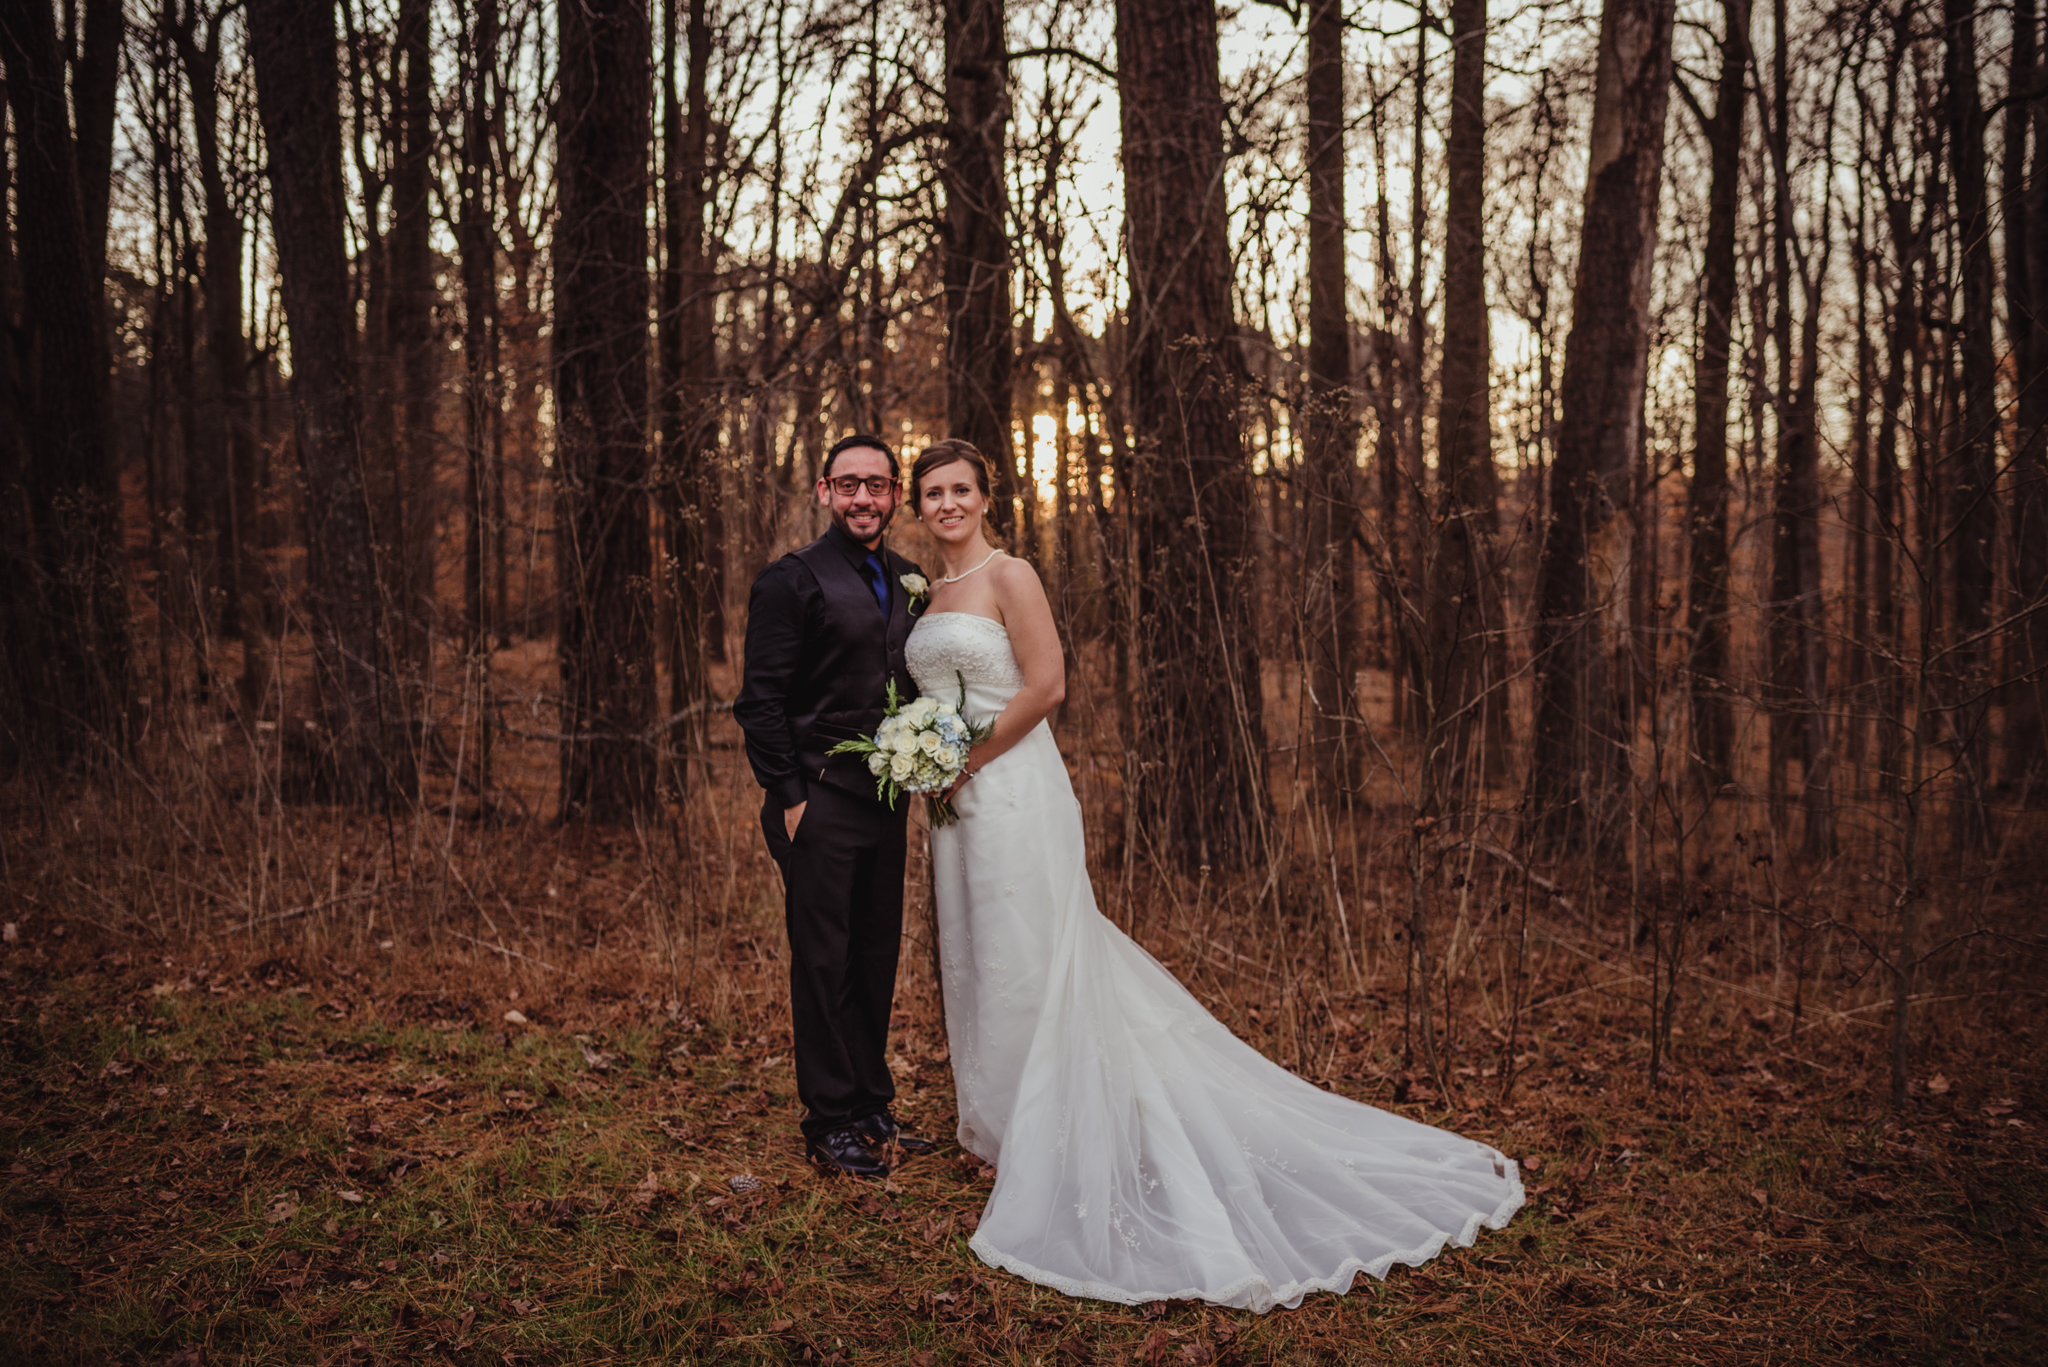 the-bride-and-groom-pose-for-pictures-in-the-woods-at-a-local-park-here-in-raleigh.jpg